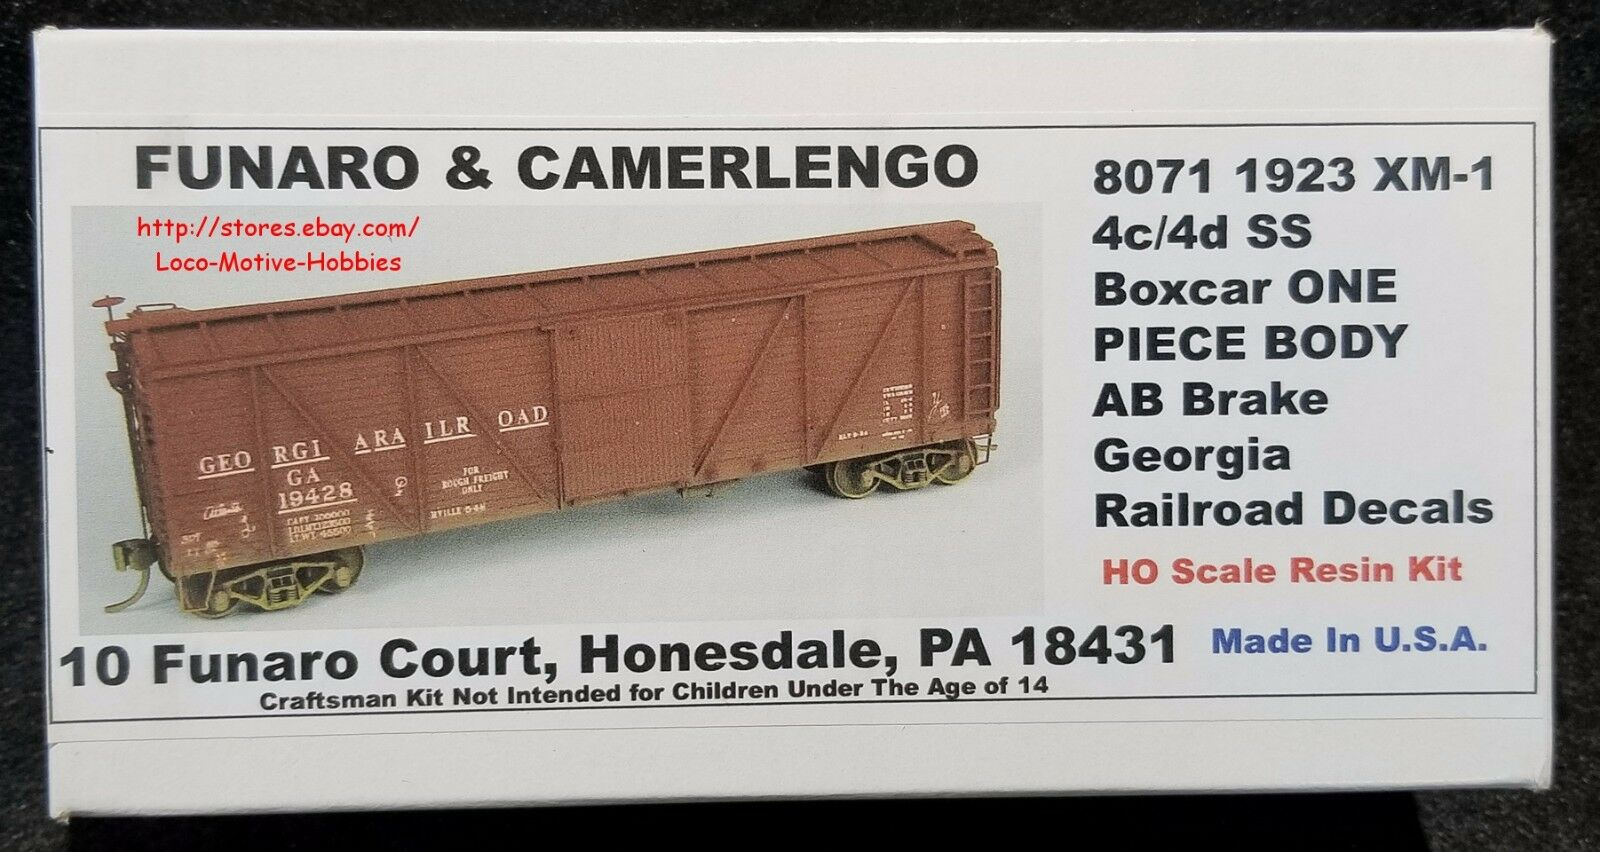 LMH Funaro F&C 8071 279-8071  GEORGIA Railroad  1923 Wood Boxcar  GARR  1-PIECE